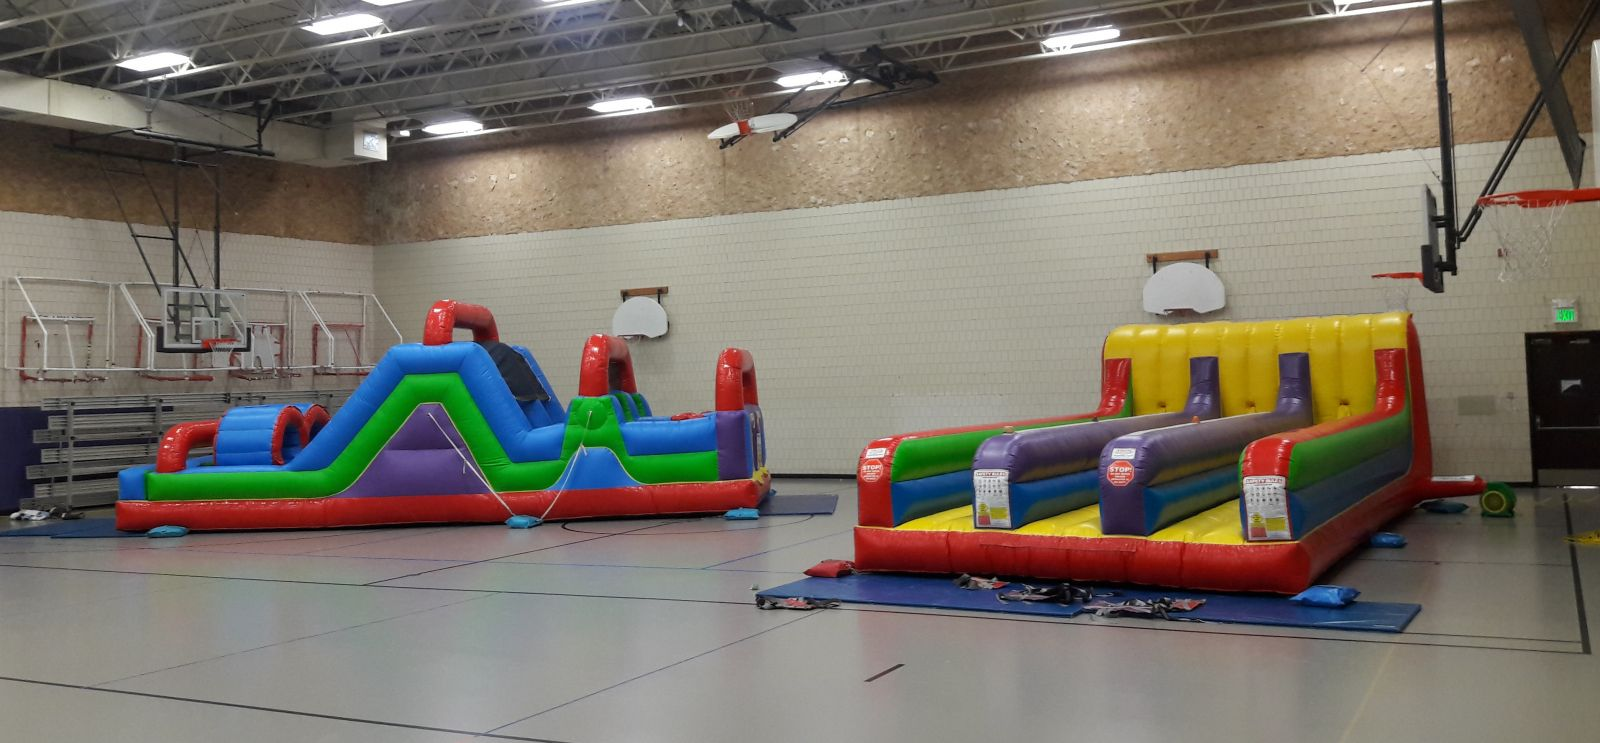 Inflatable 3-Lane Bungee Run and Obstacle Course in School Gym